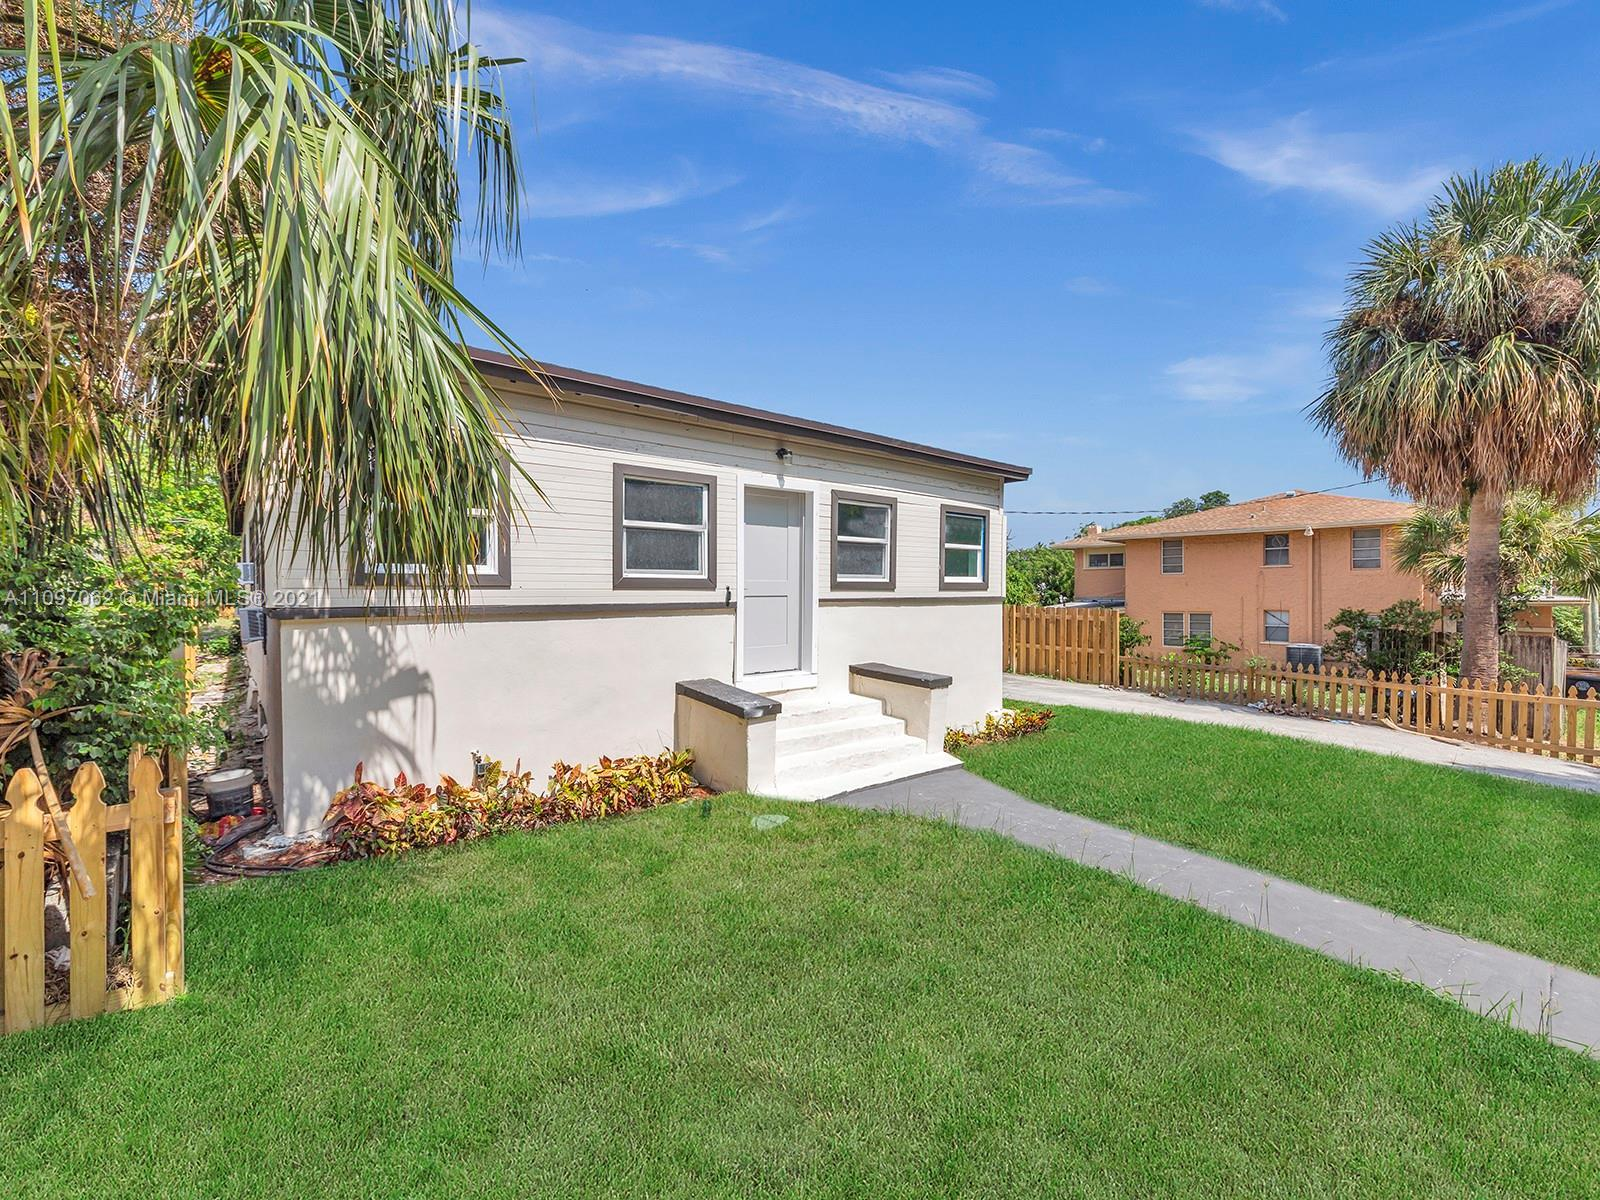 FULLY REMODELED 4/3 SINGLE-FAMILY HOME, BOOSTING 1700 SQF IN GREAT UPCOMING DOWNTOWN WPB AREA. THIS